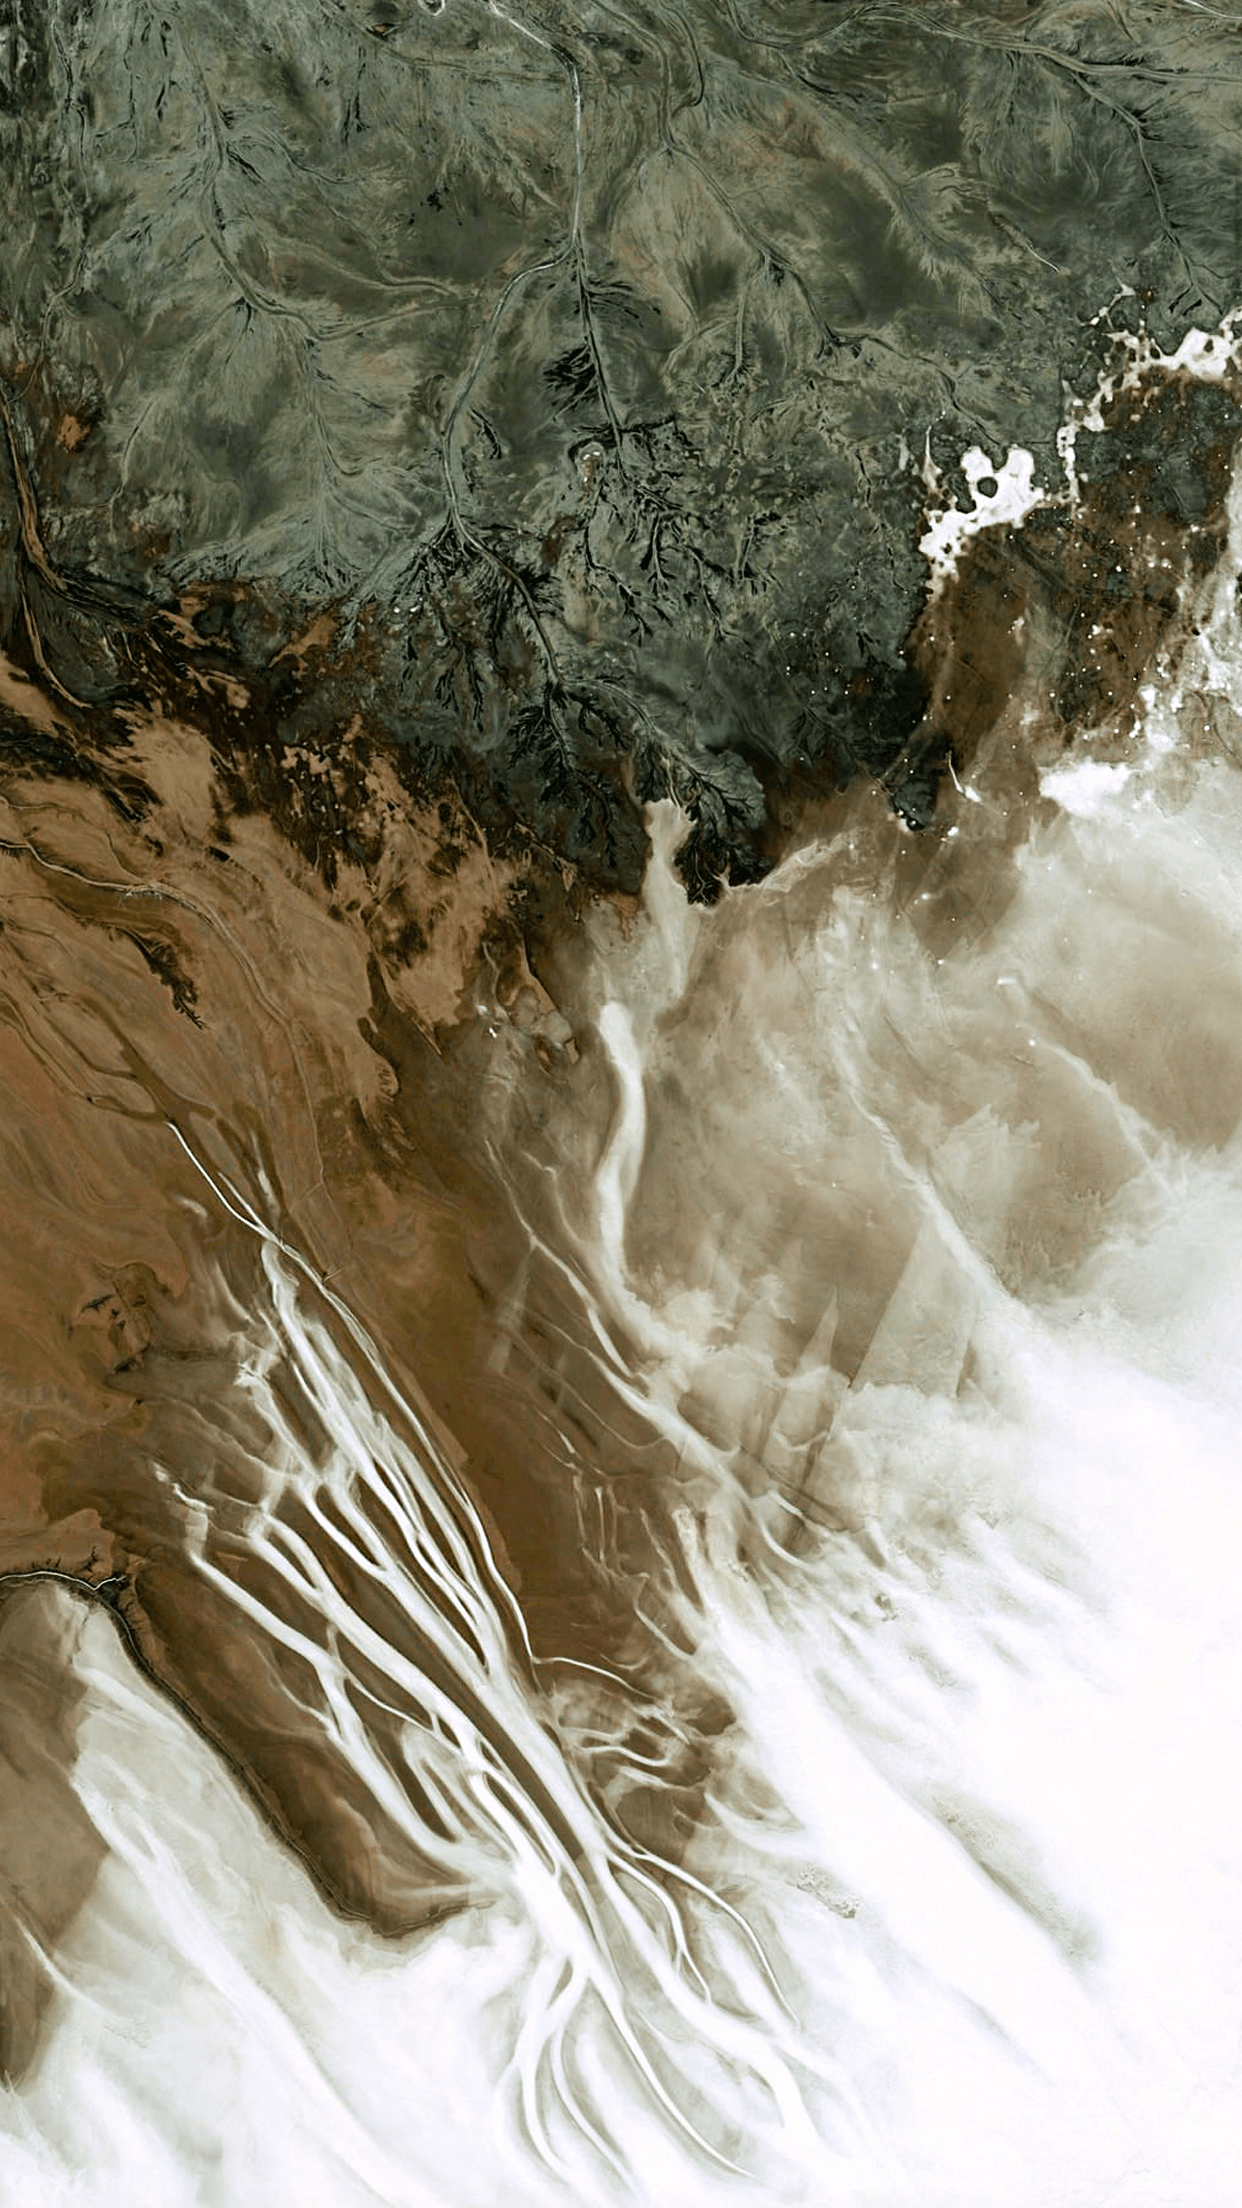 iPhone wallpaper satellite images antonio quijarro Satellite images